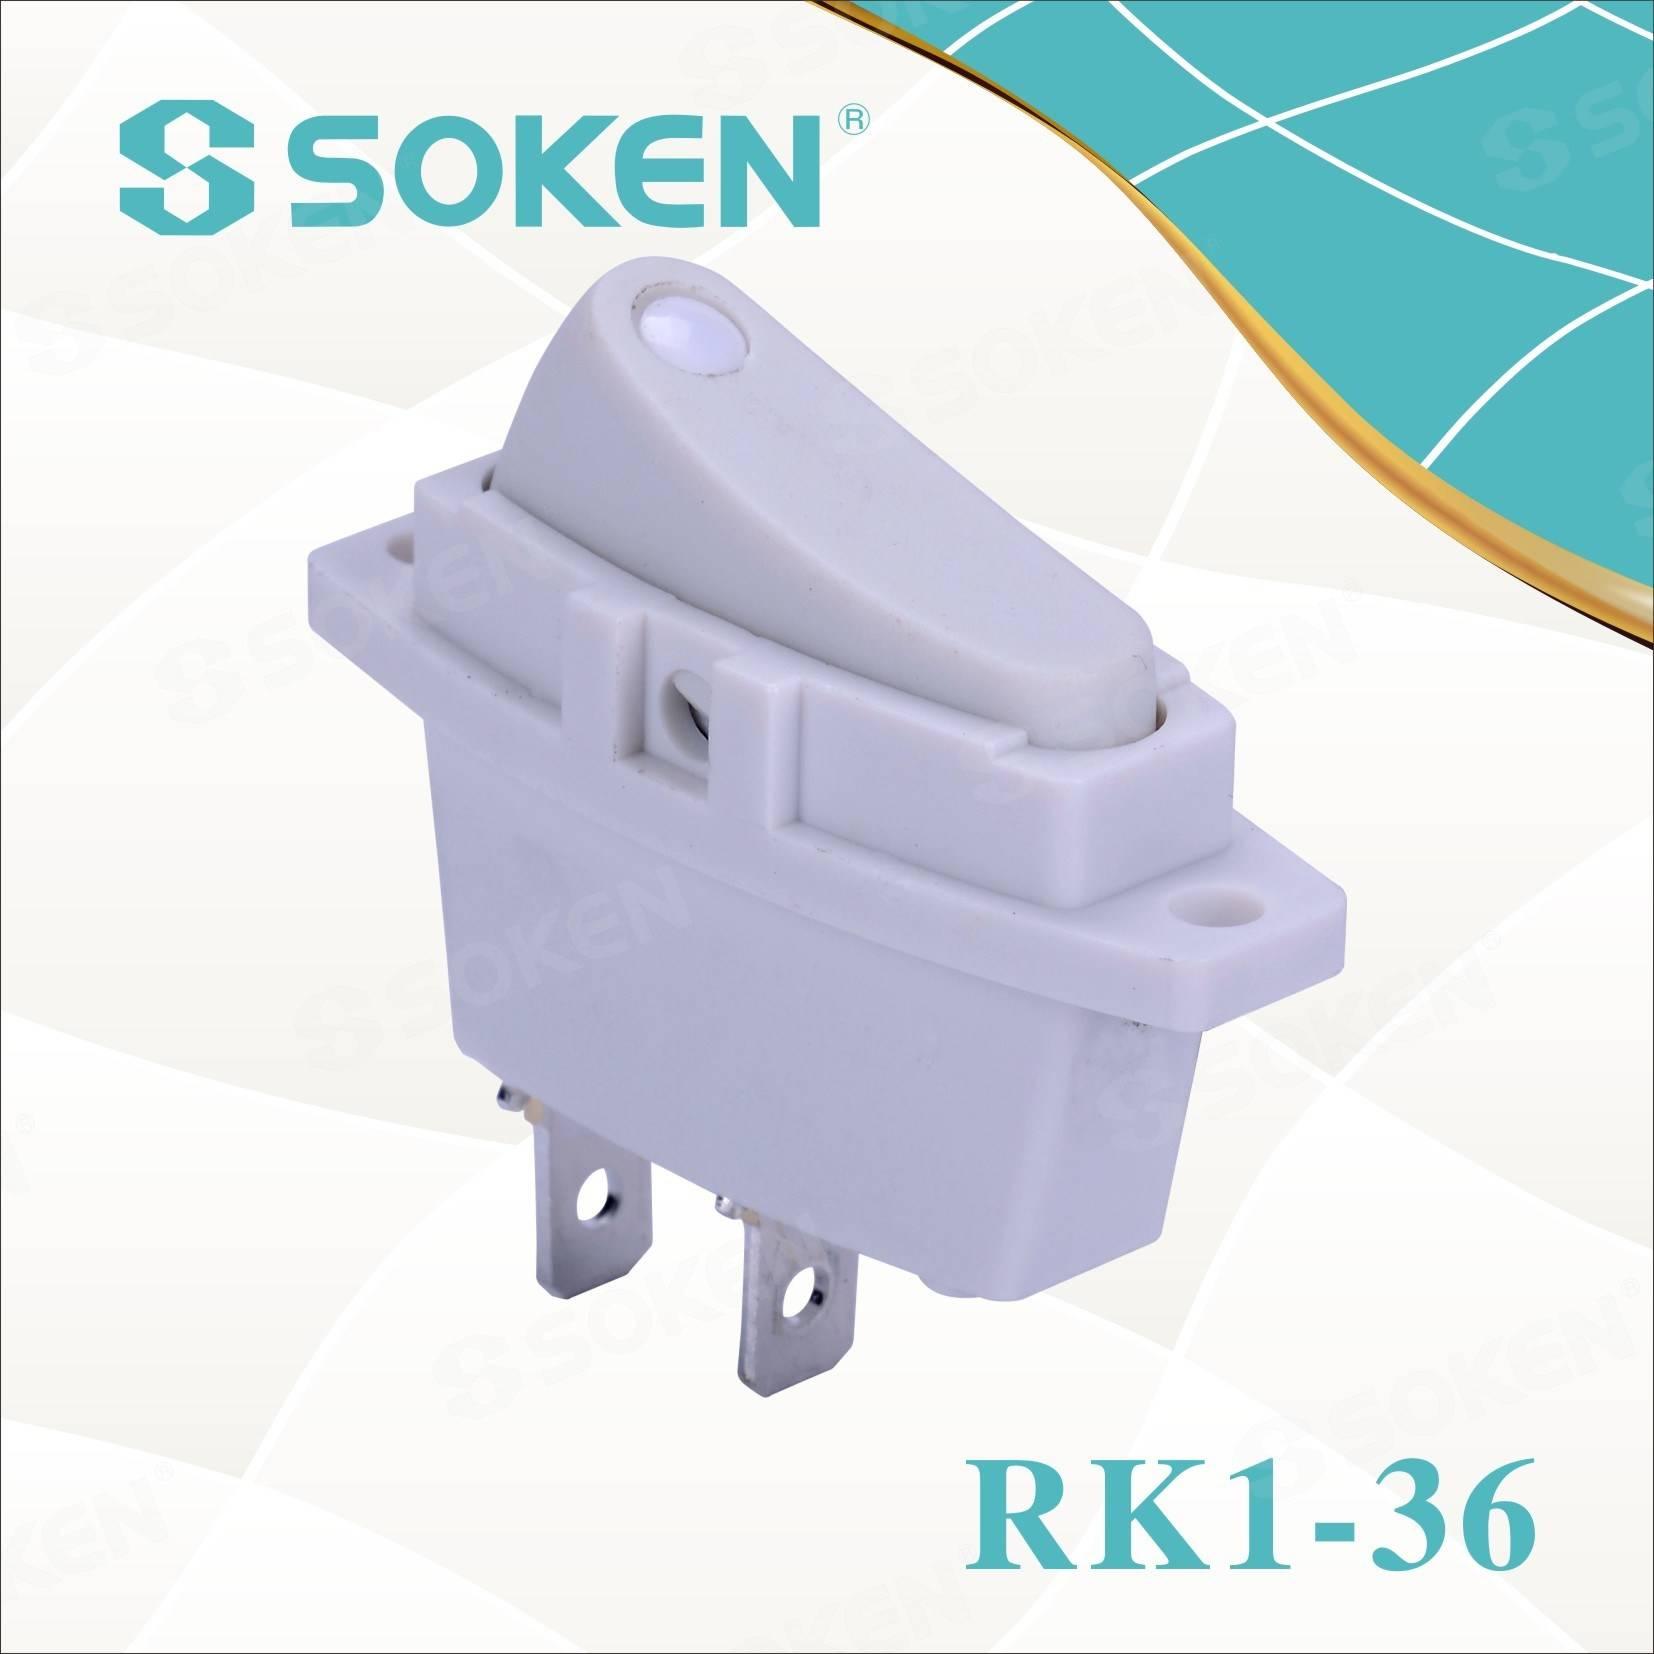 1X1 Soken Rk1-36 off a rocker switch